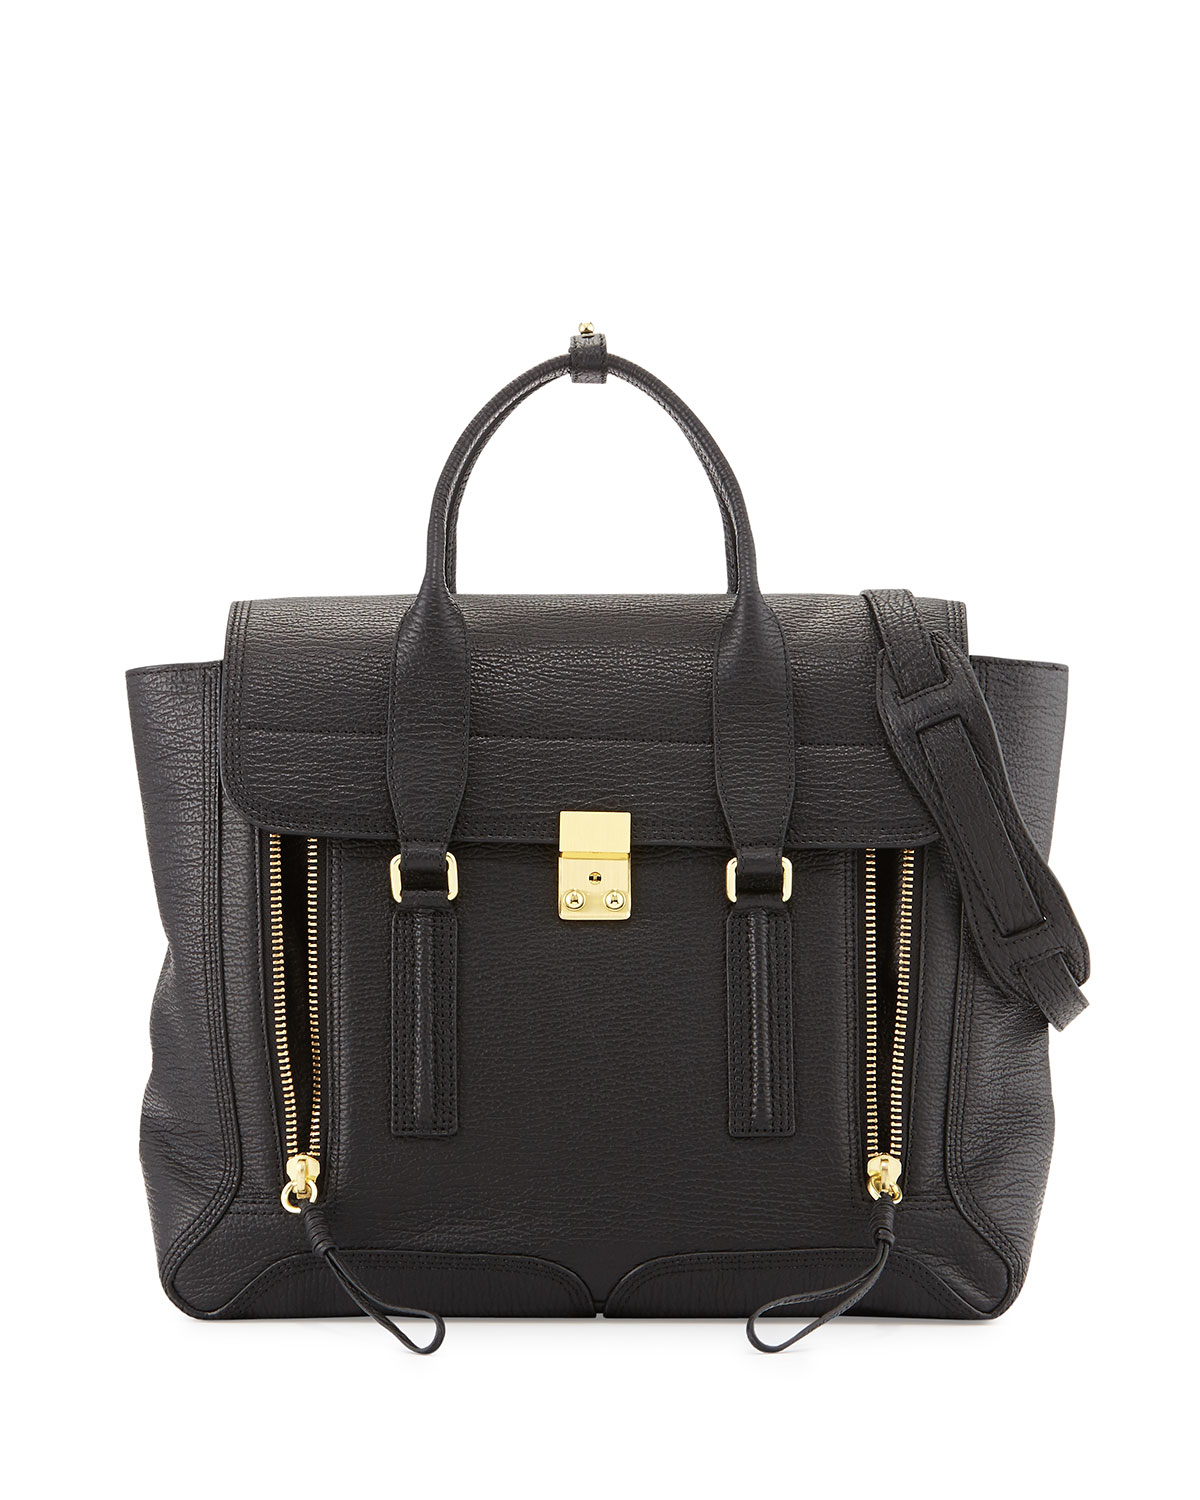 Designer Deal: This 3.1 Phillip Lim Bag Is Half Off at The ...